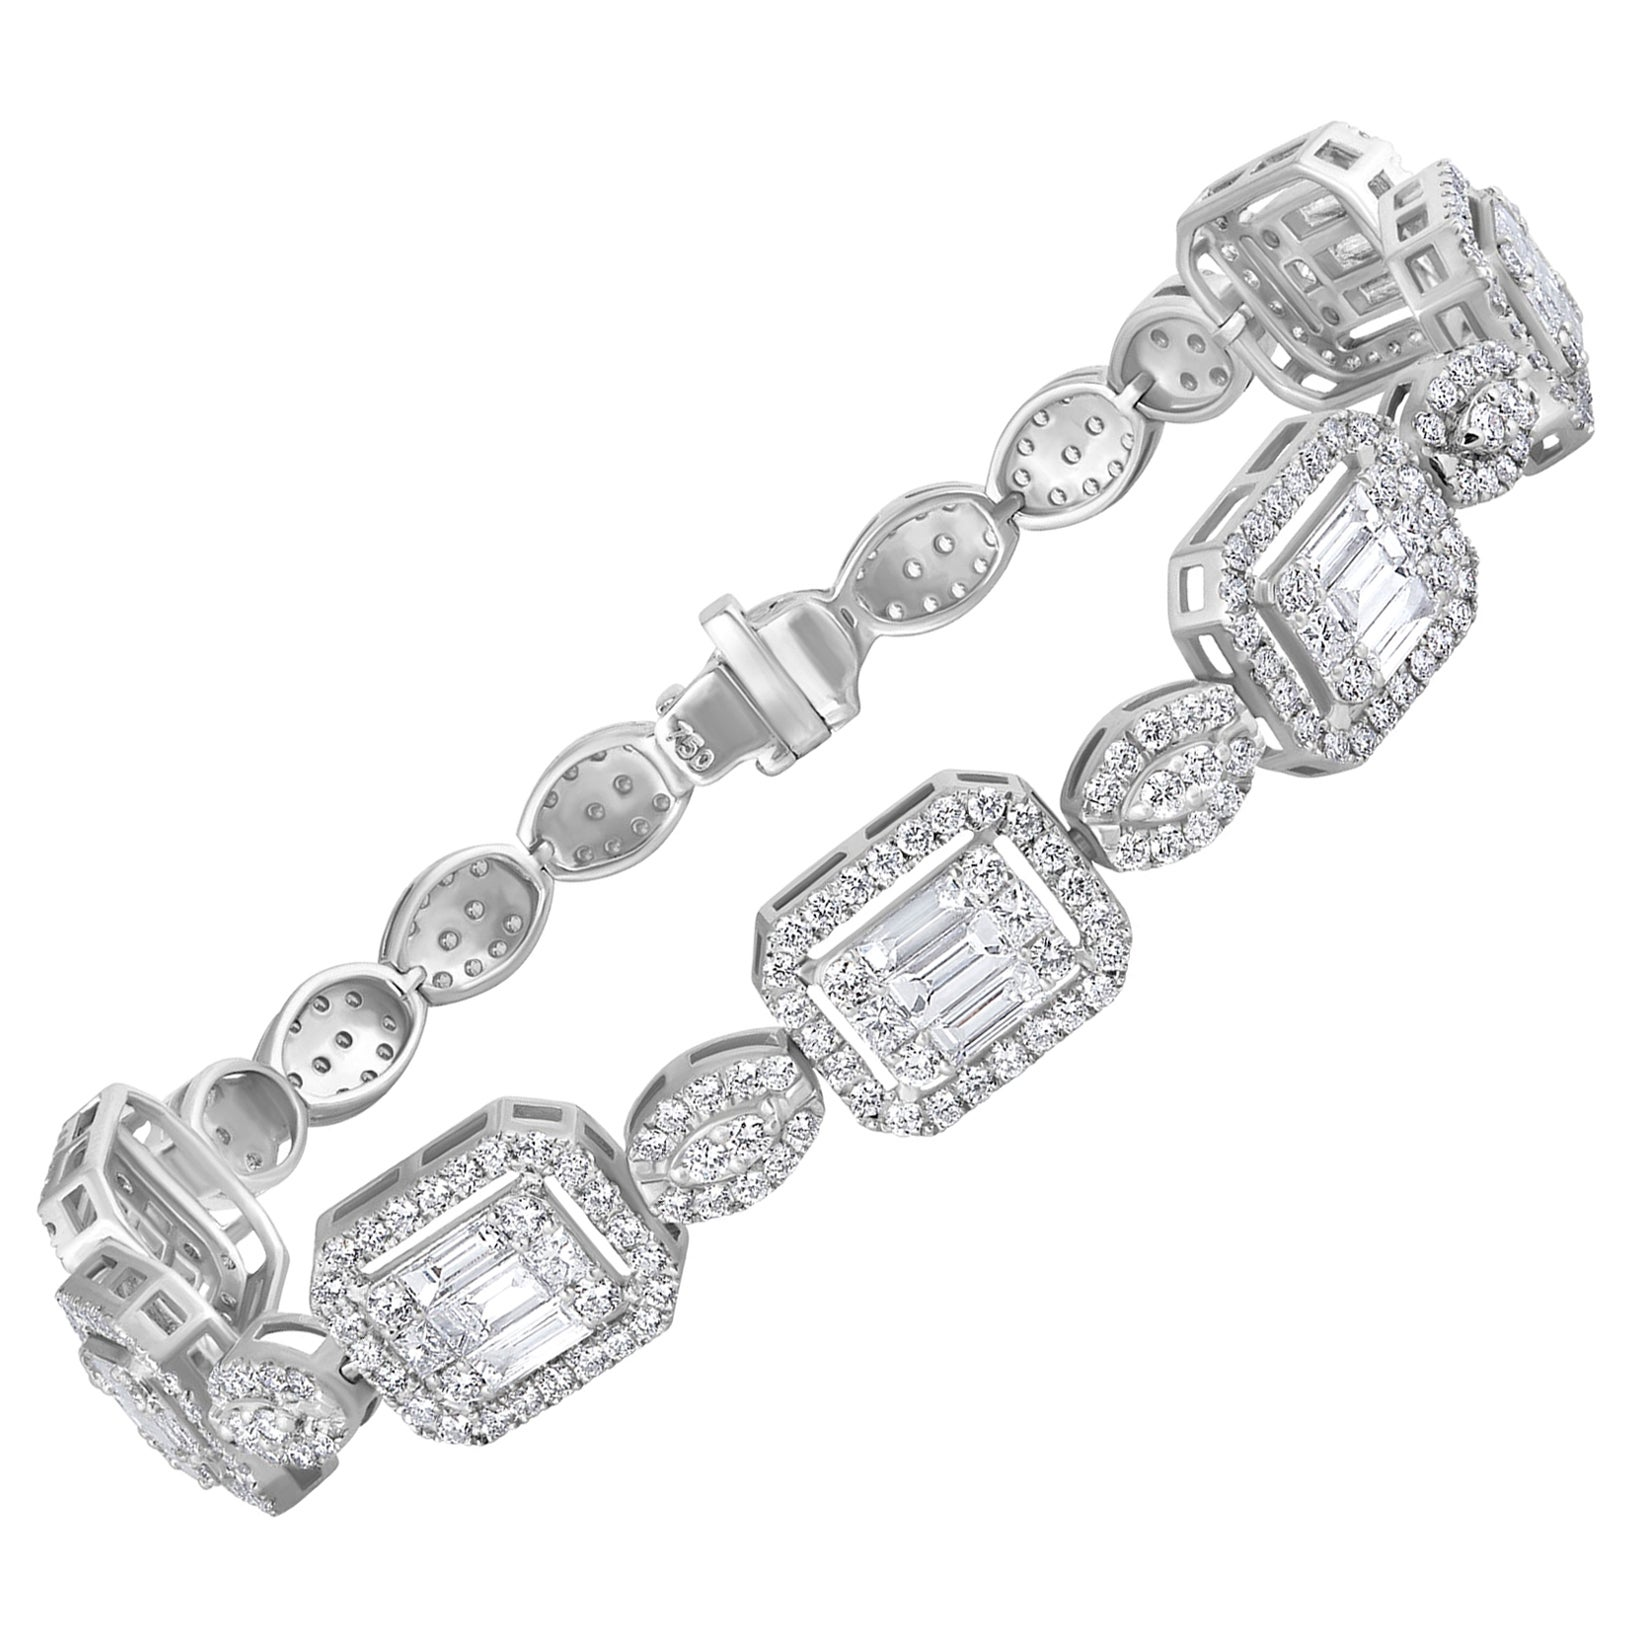 Emilio Jewelry 6.07 Carat Fancy Diamond Bracelet